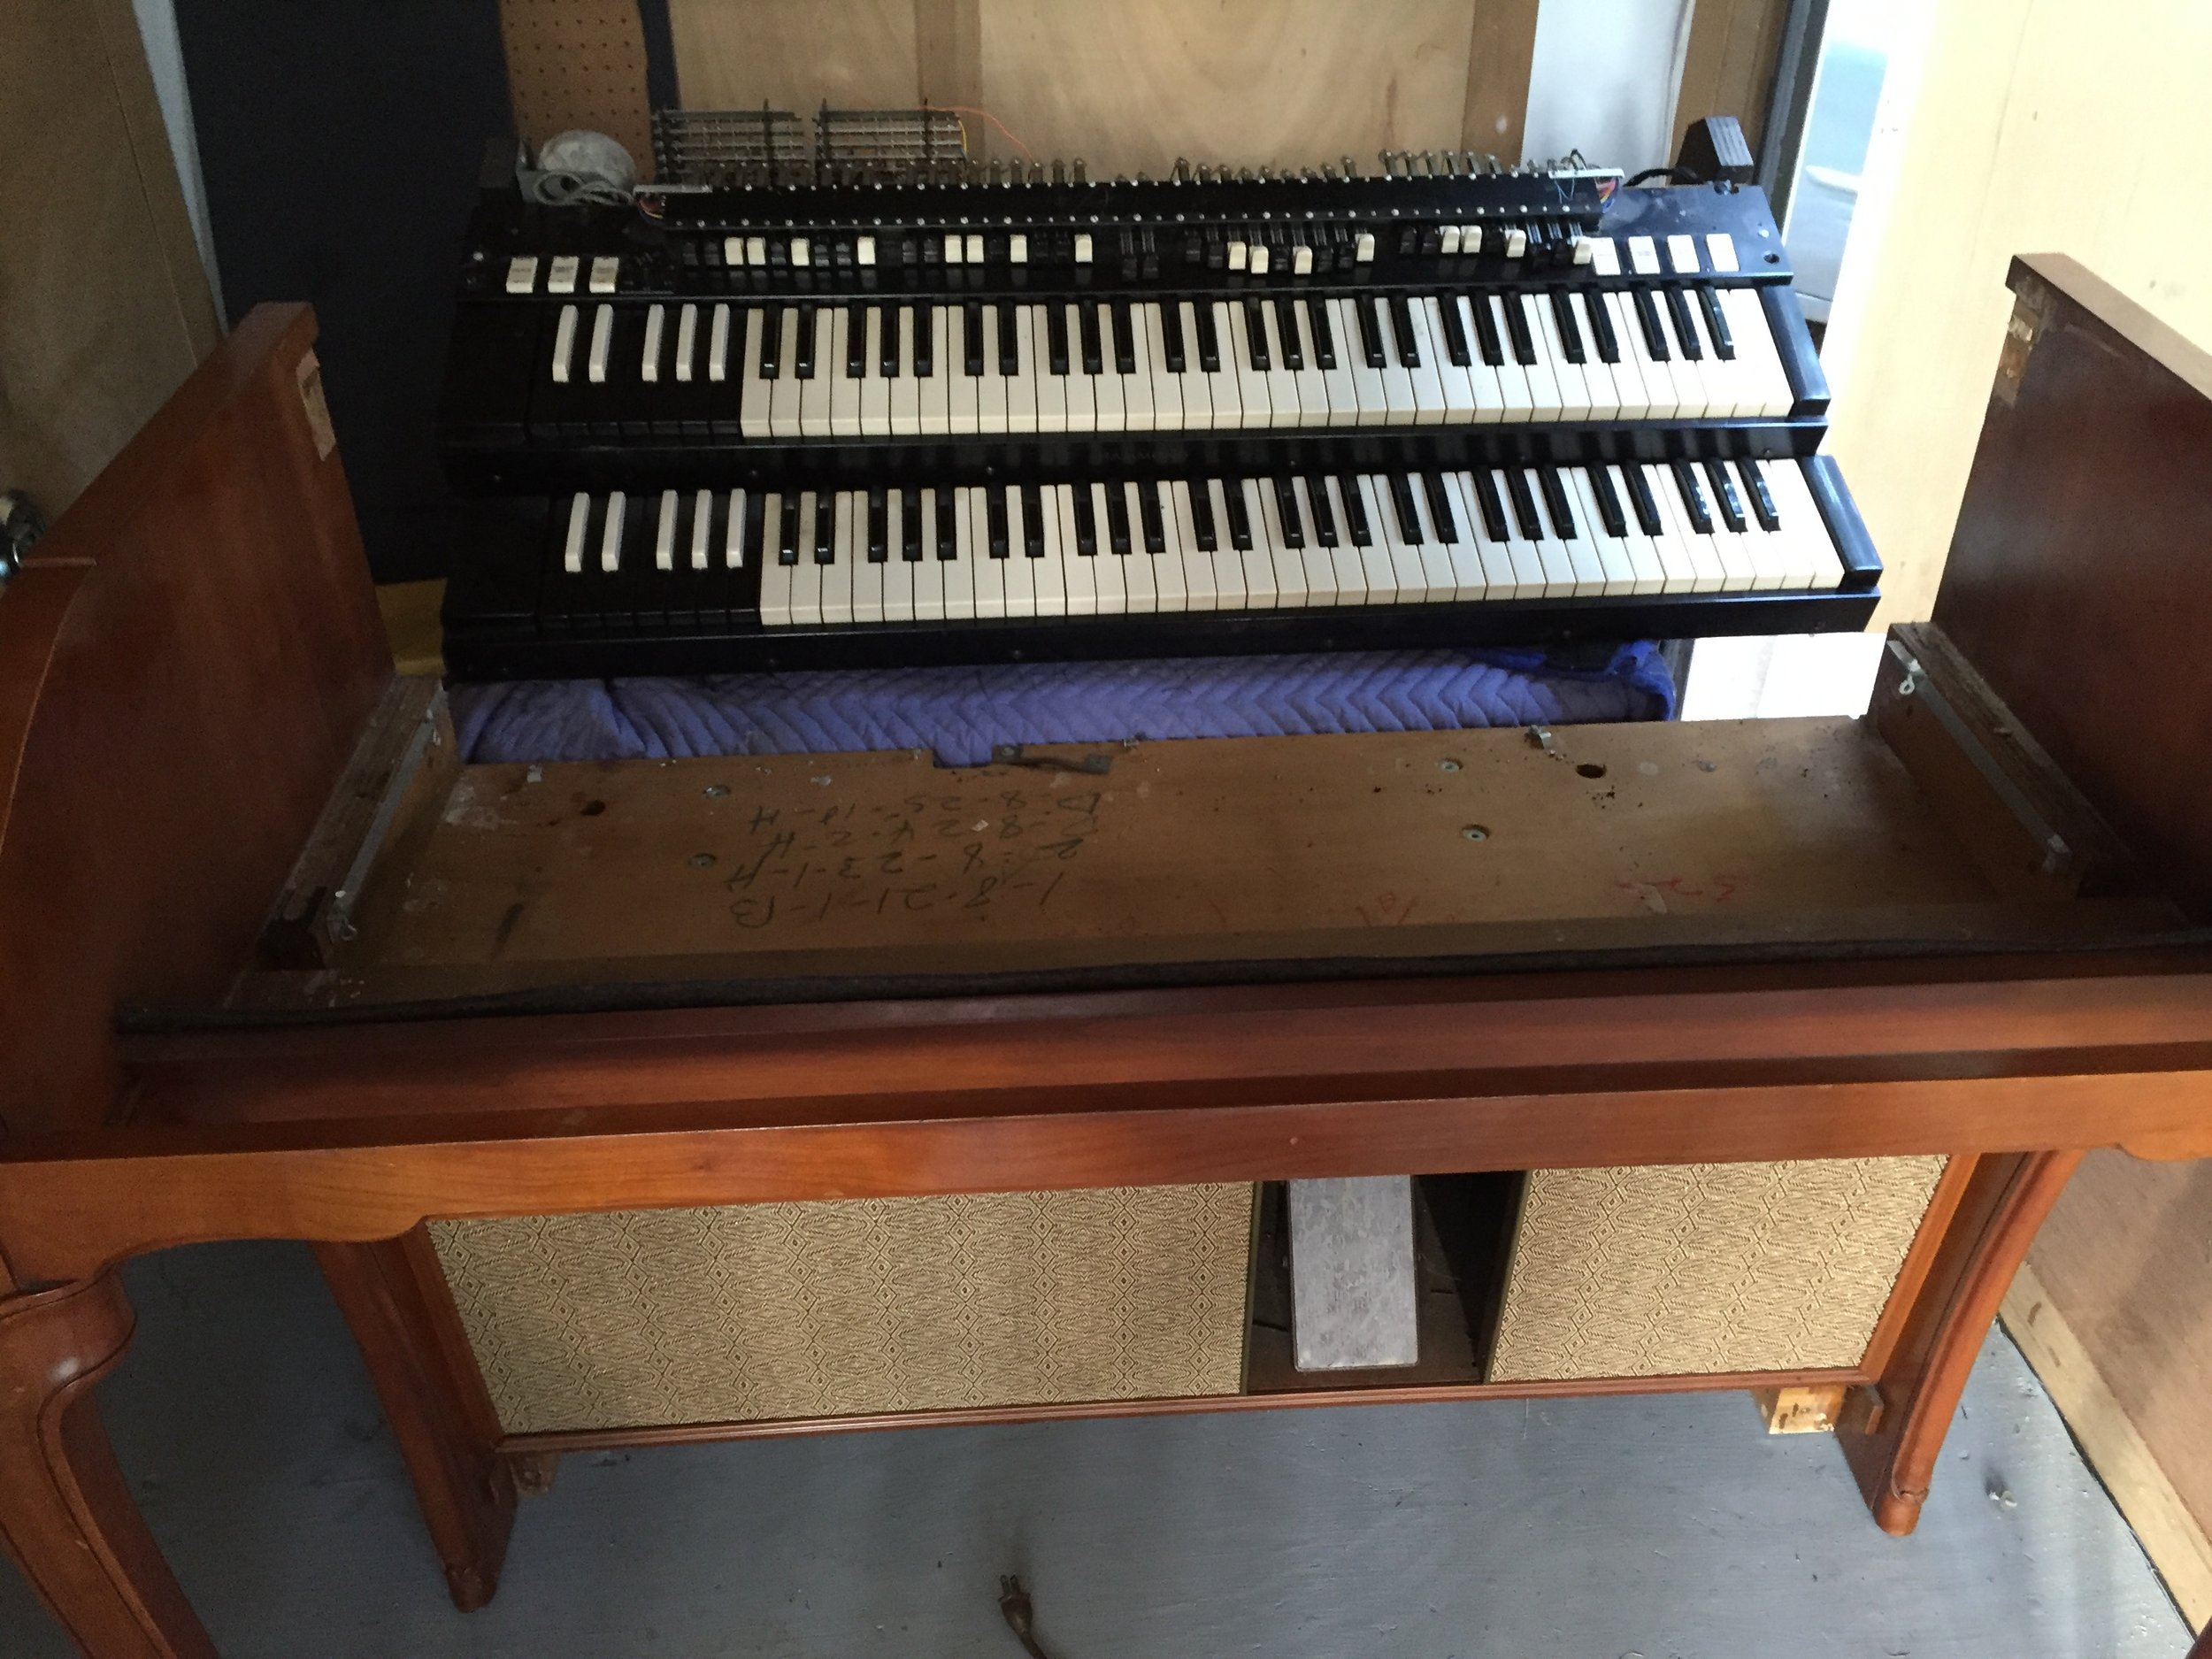 The organ had numerous playing problems as well. Rather than troubleshoot and repair or replace all the faulty components,I decided to completely replace everything all at once with the innards from this great sounding, lightly used Hammond A-102.